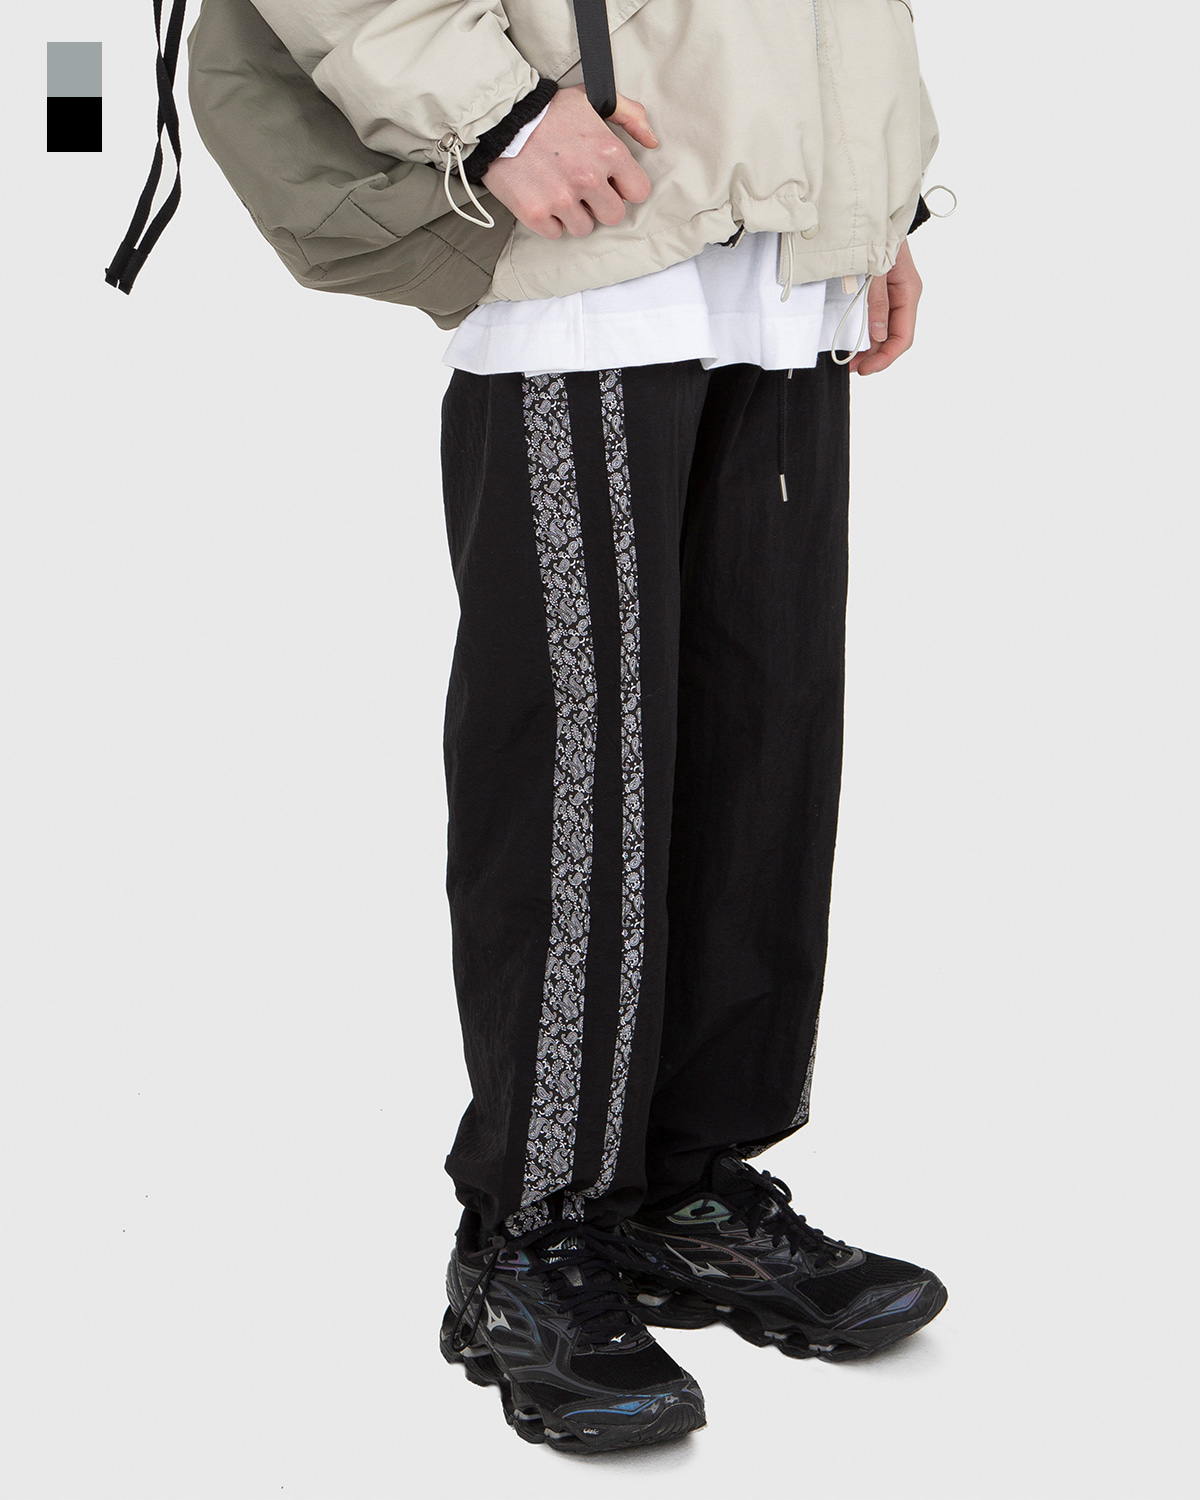 raucohouse-PAISLEY DOUBLE LINE PANTS - RAUCO HOUSE♡韓國男裝褲子